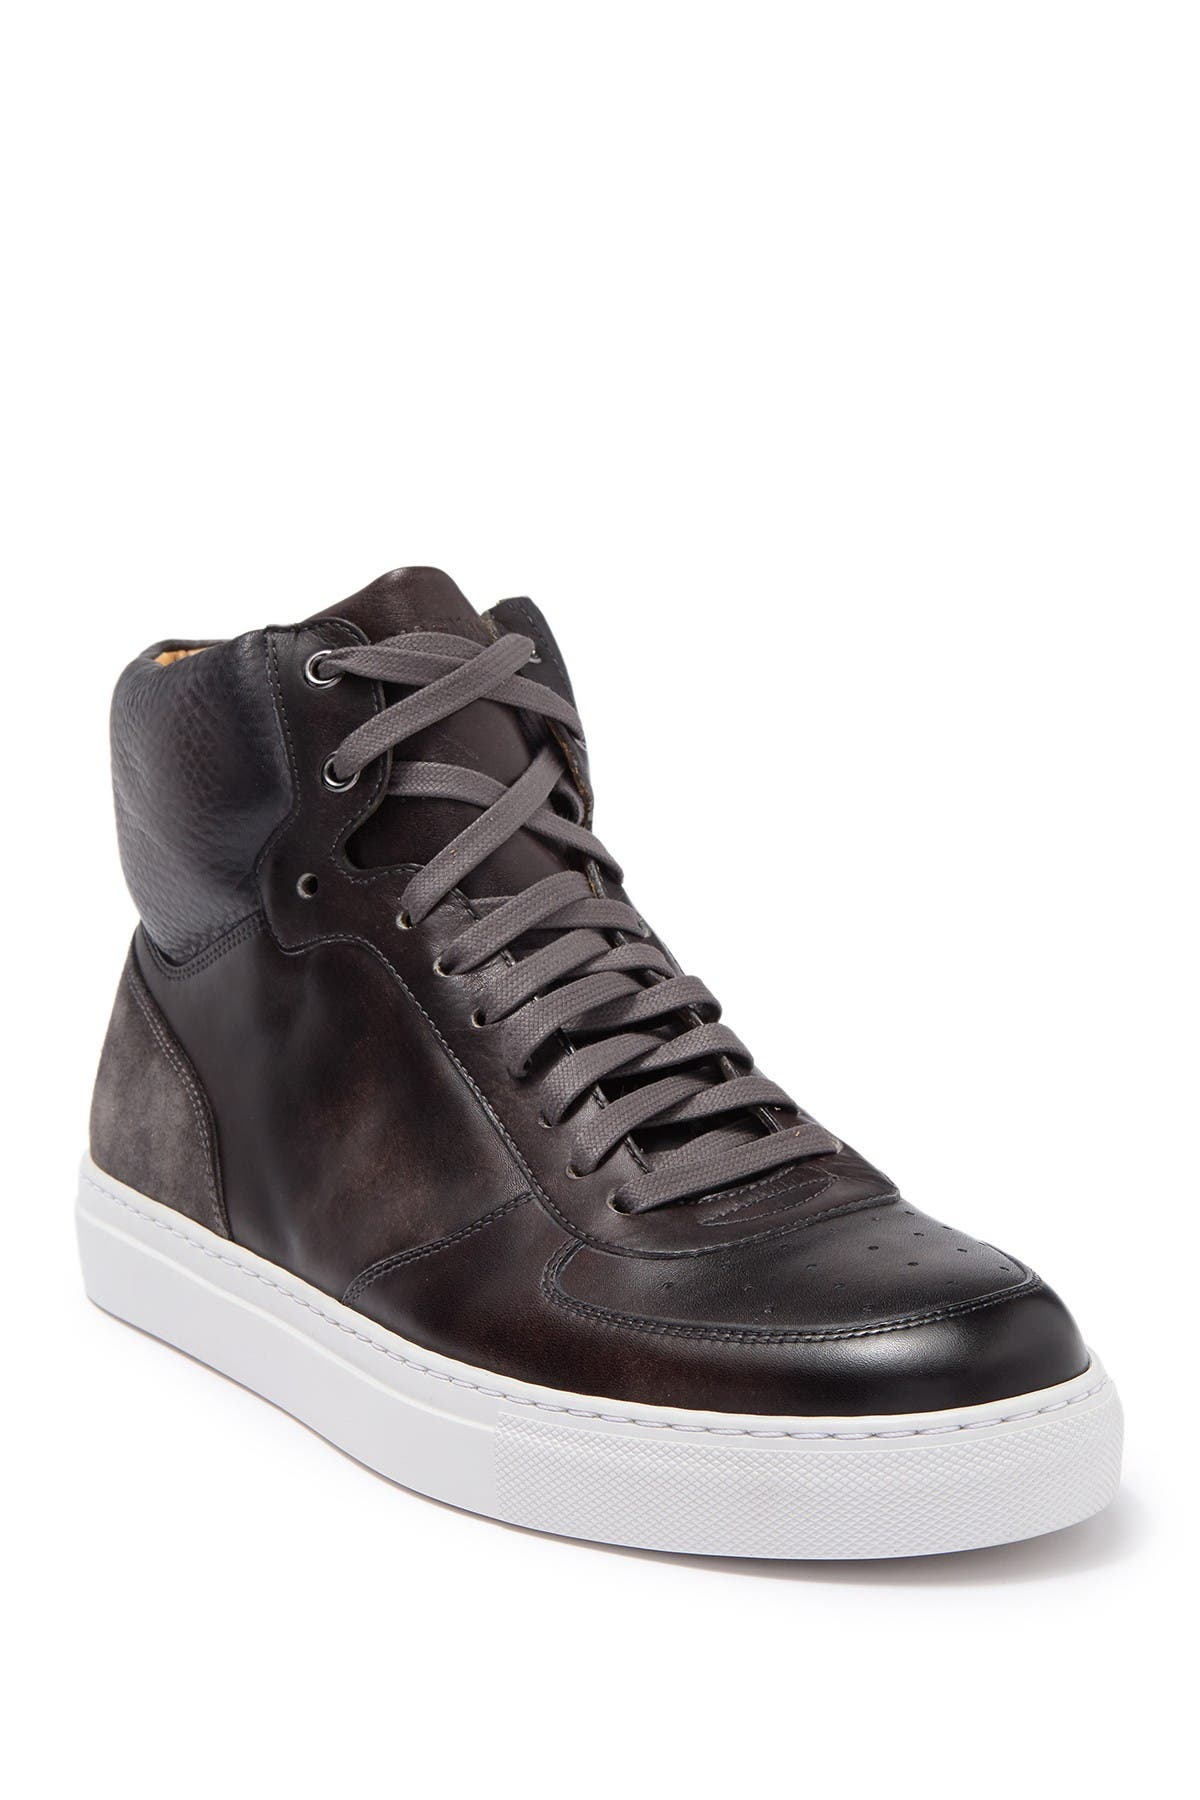 Image of Magnanni Royal Leather High Top Sneaker